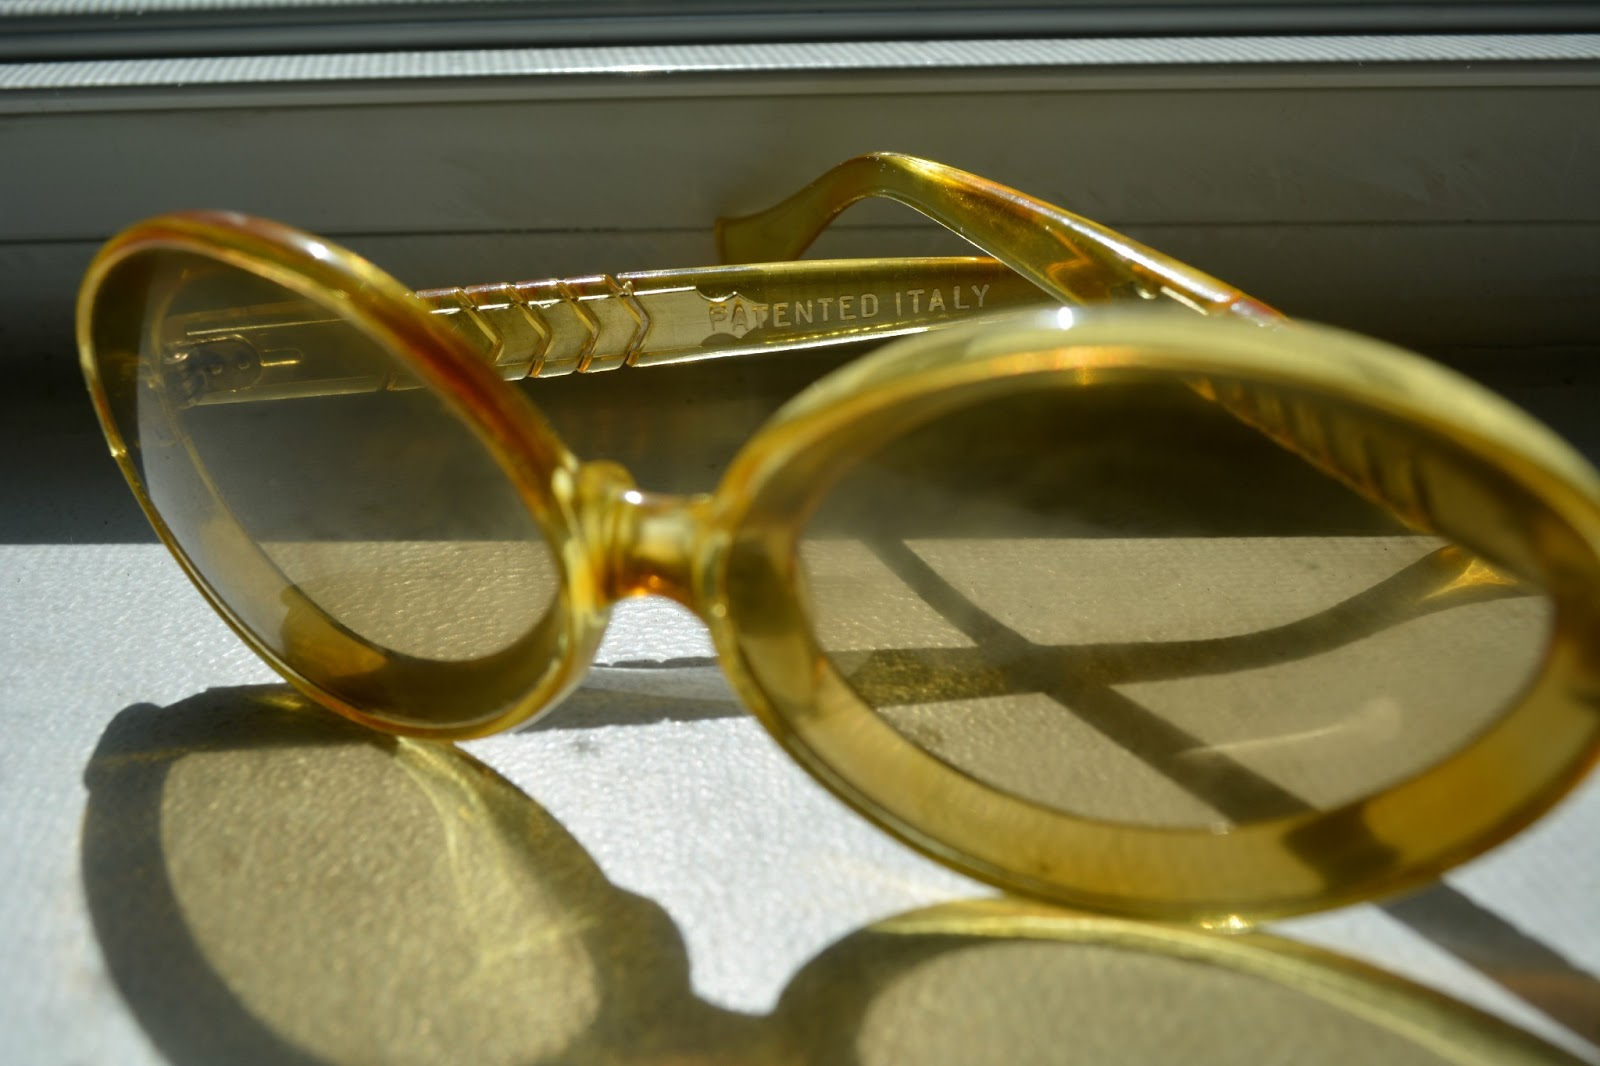 vintage patented italy sunglasses